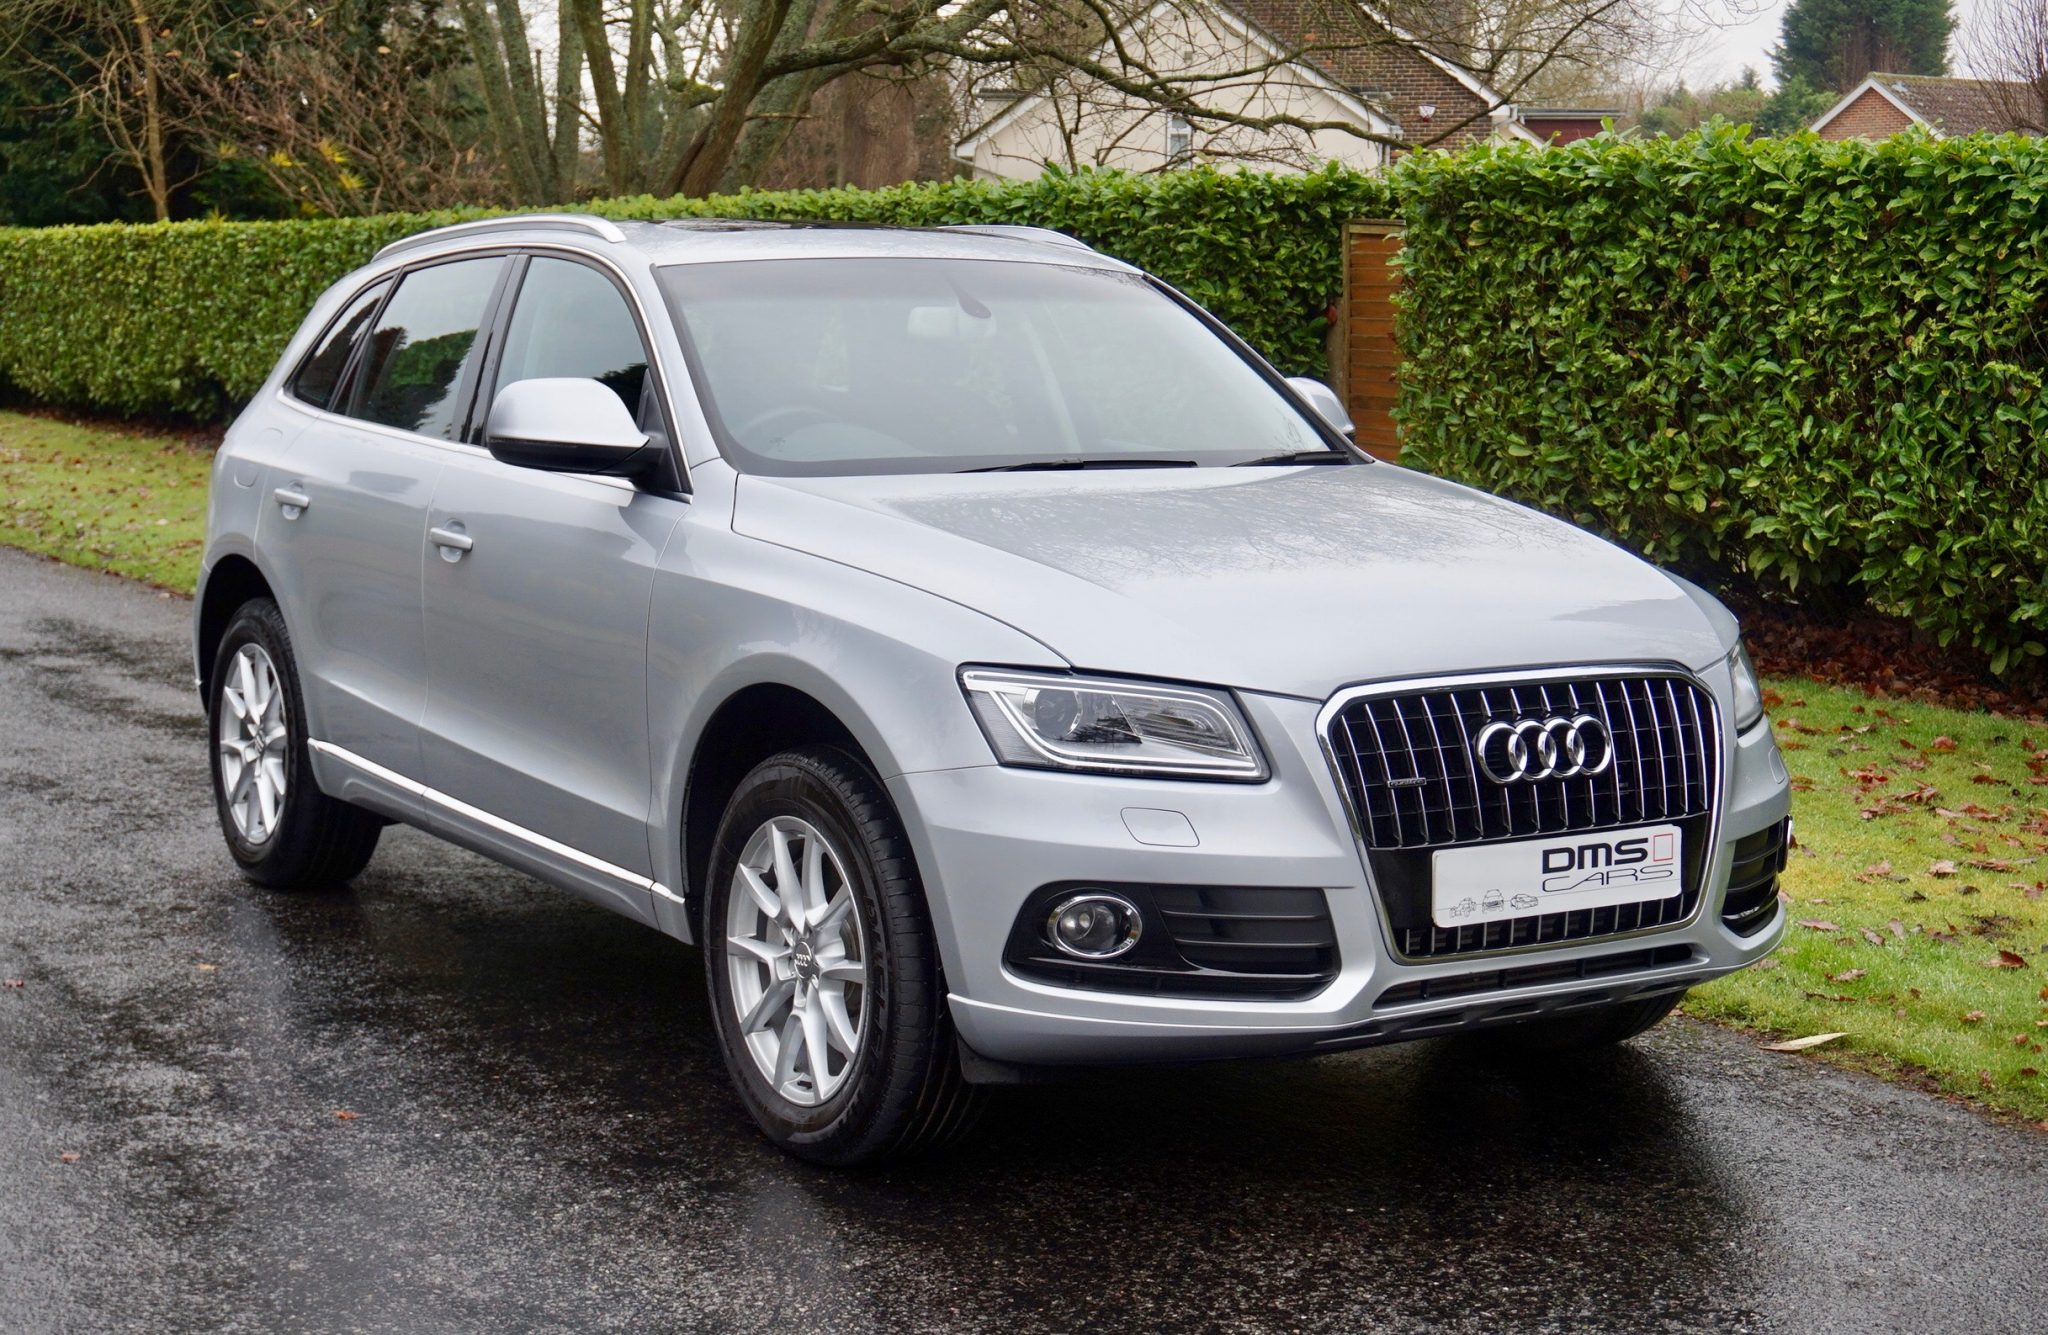 audi q5 3 0 tdi se quattro s tronic dms cars. Black Bedroom Furniture Sets. Home Design Ideas